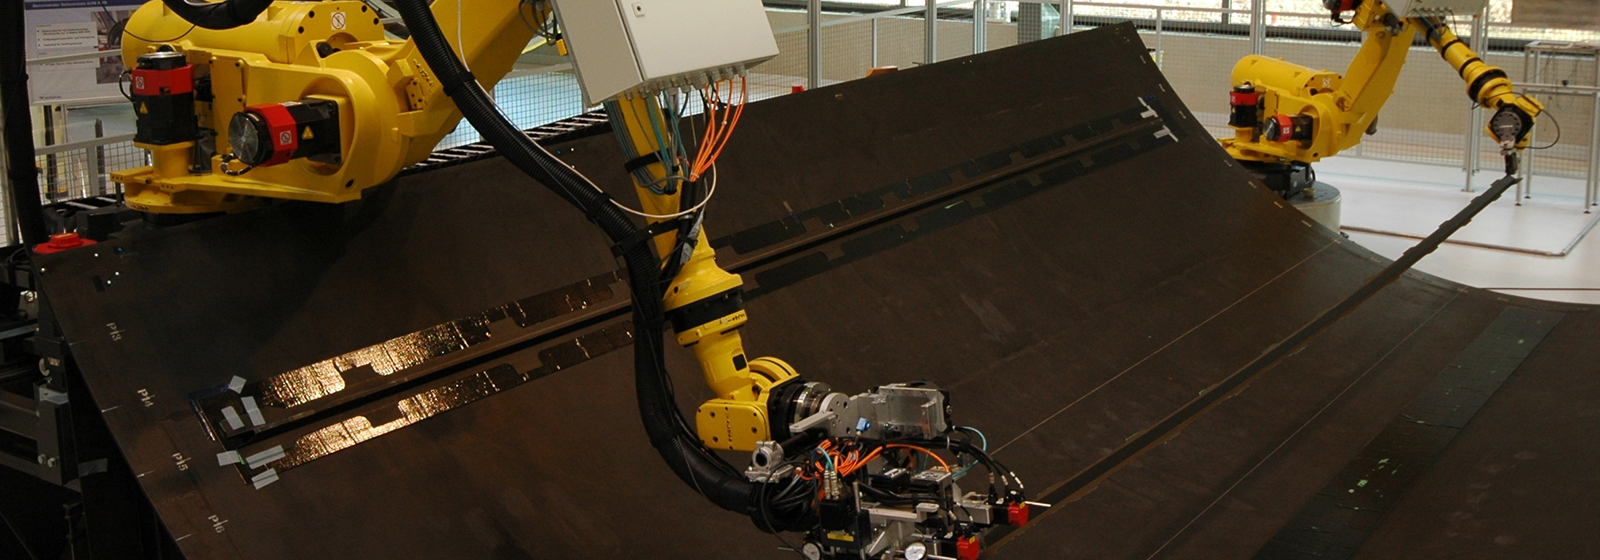 R-2000 robot bonding stringers into a composite structure